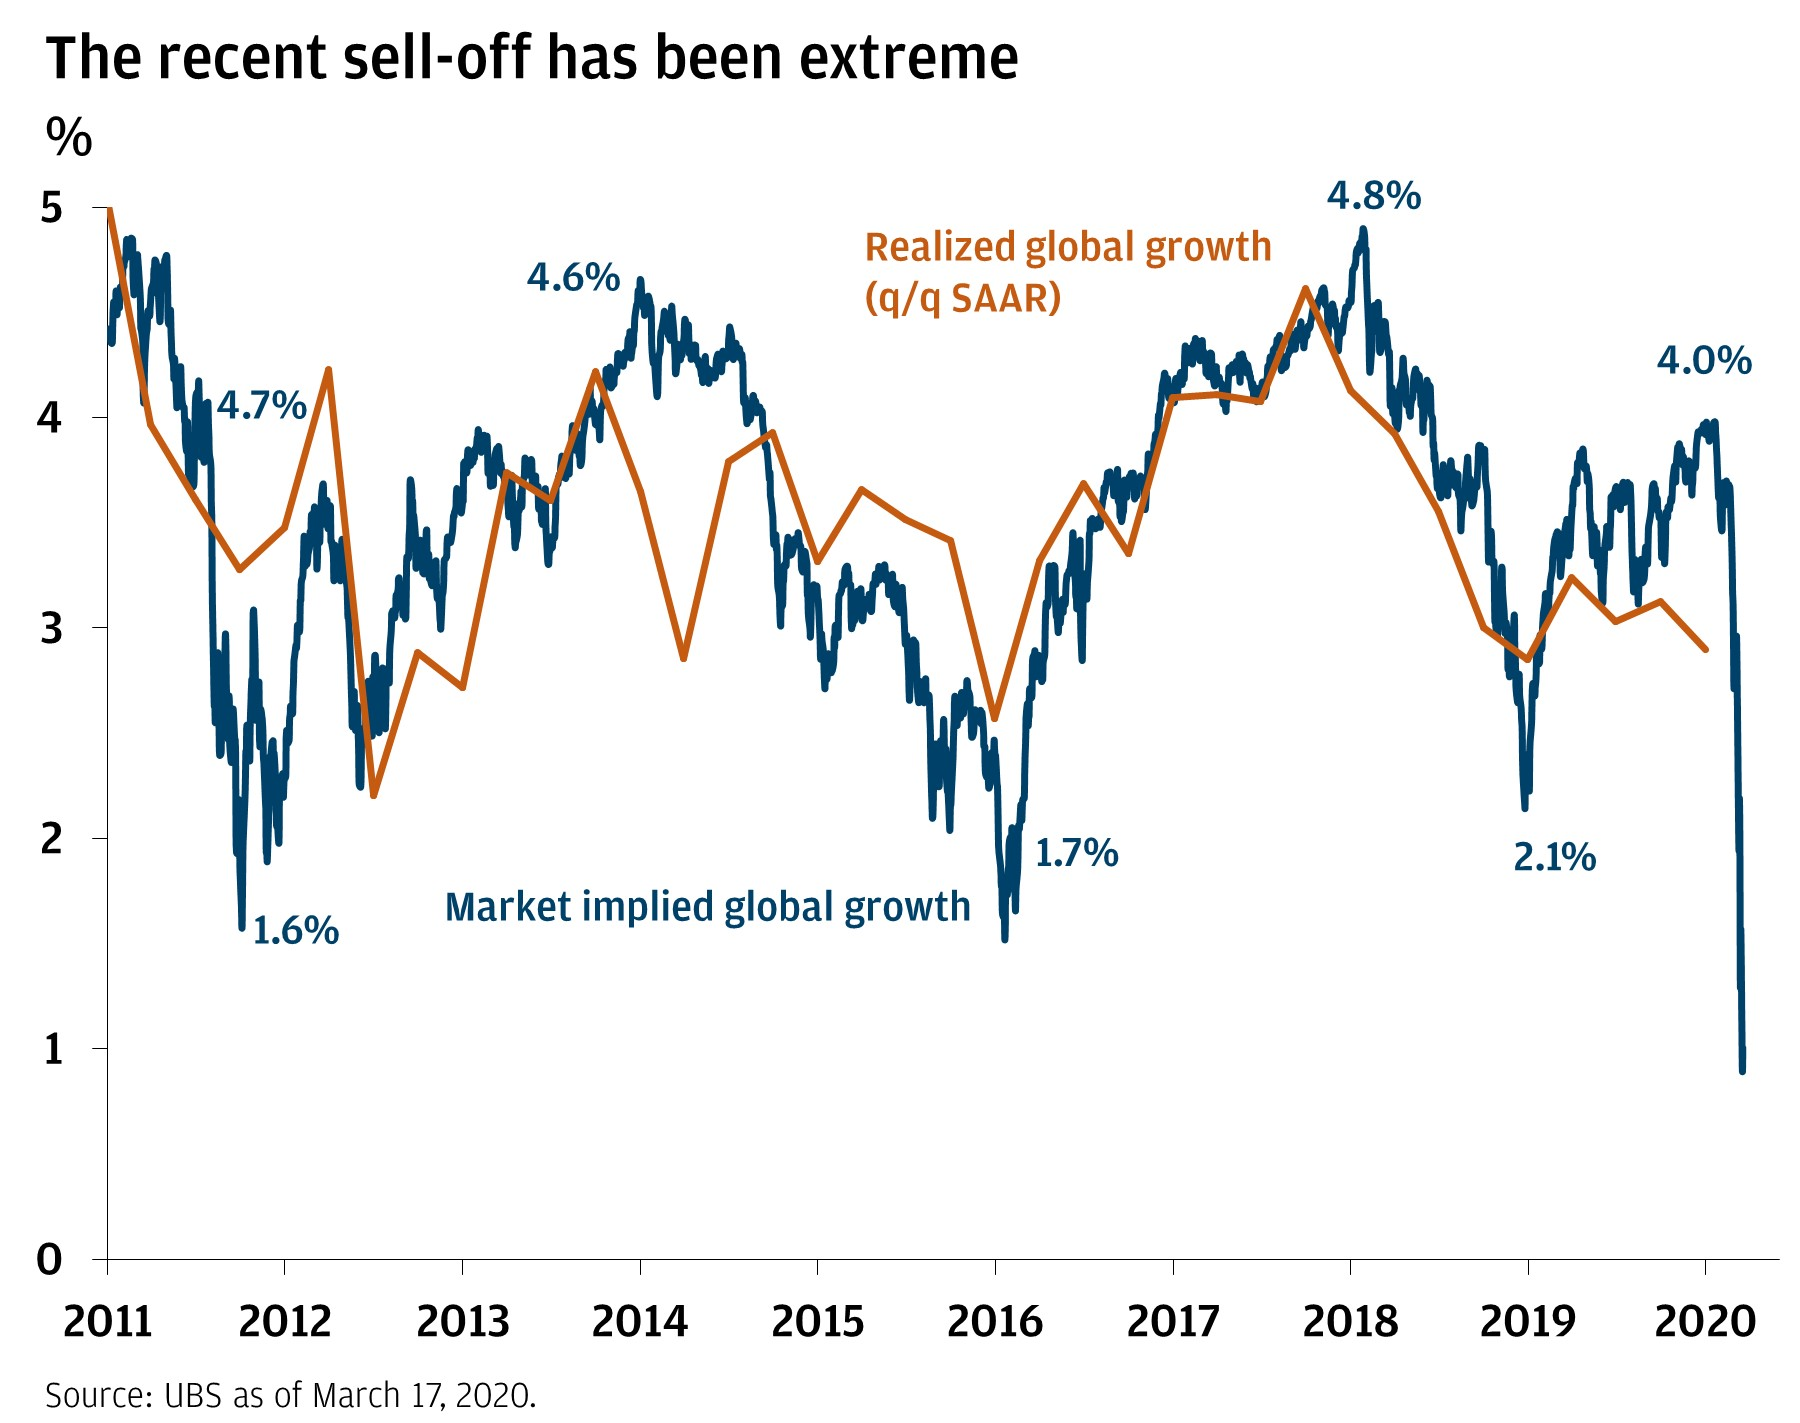 Chart compares realized global growth (q/q SAAR) to market implied global growth from 2011 through 2020.